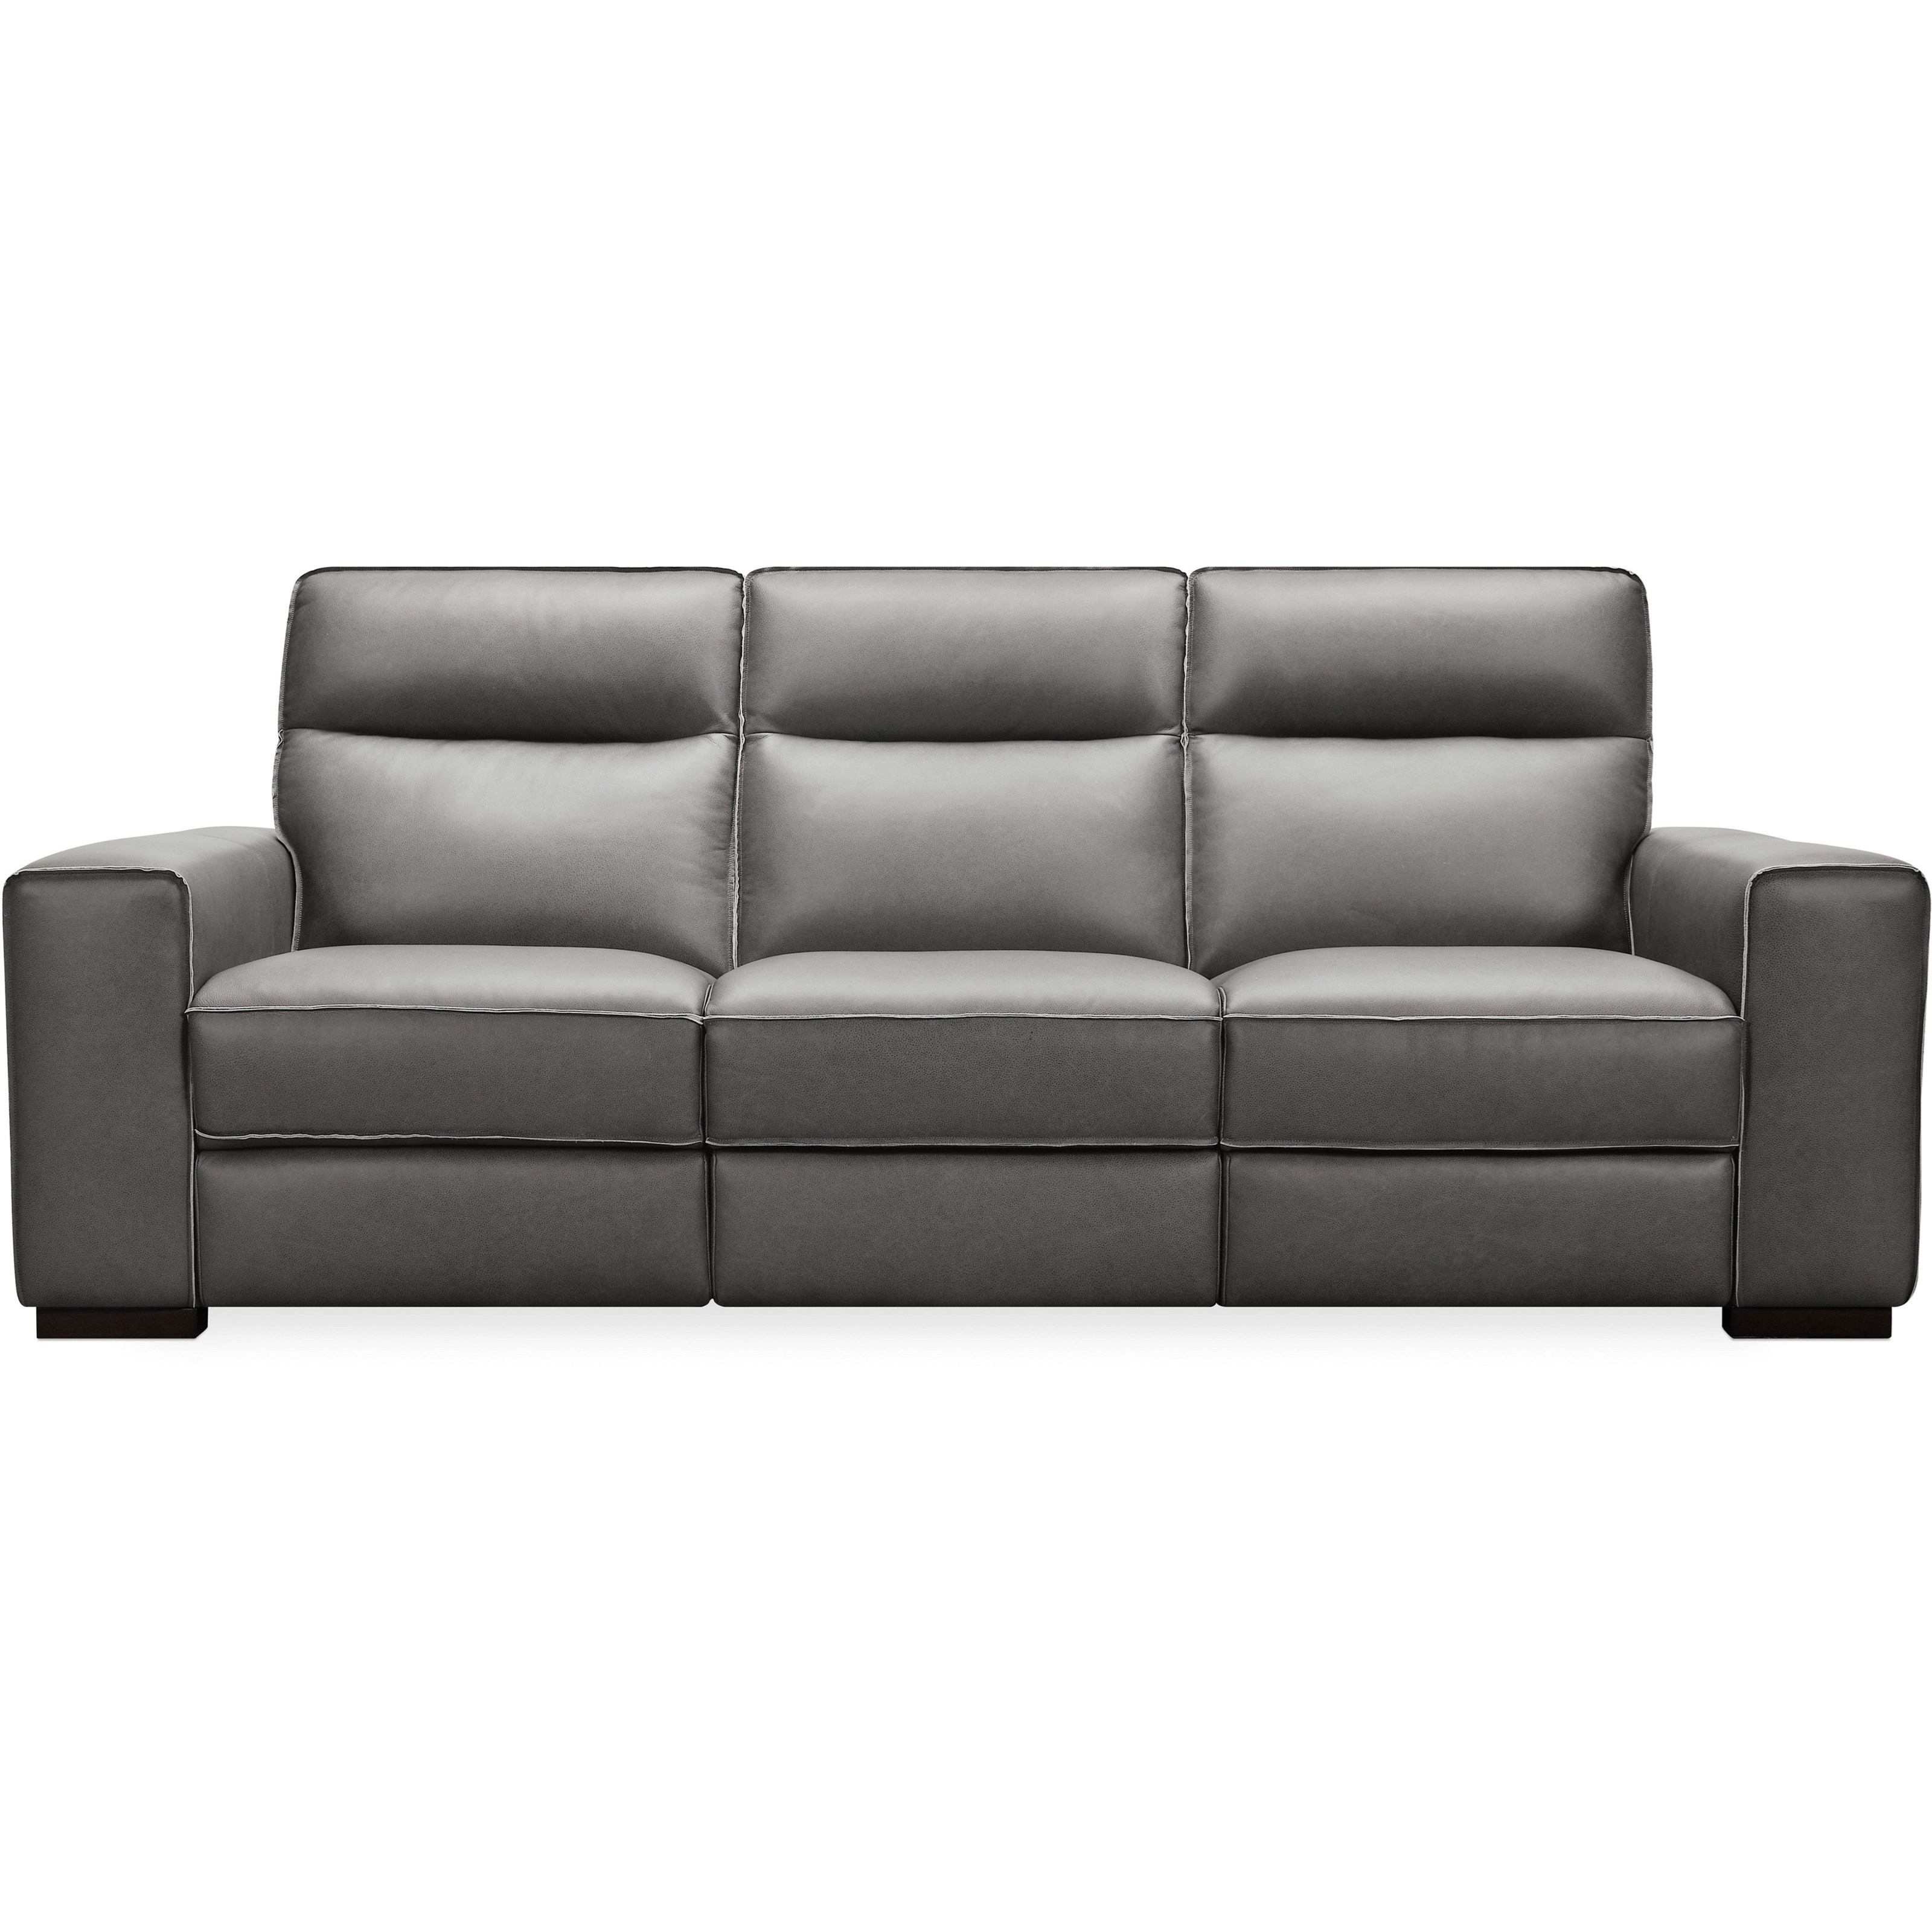 Braeburn Leather Power Reclining Sofa by Hooker Furniture at Dunk & Bright Furniture